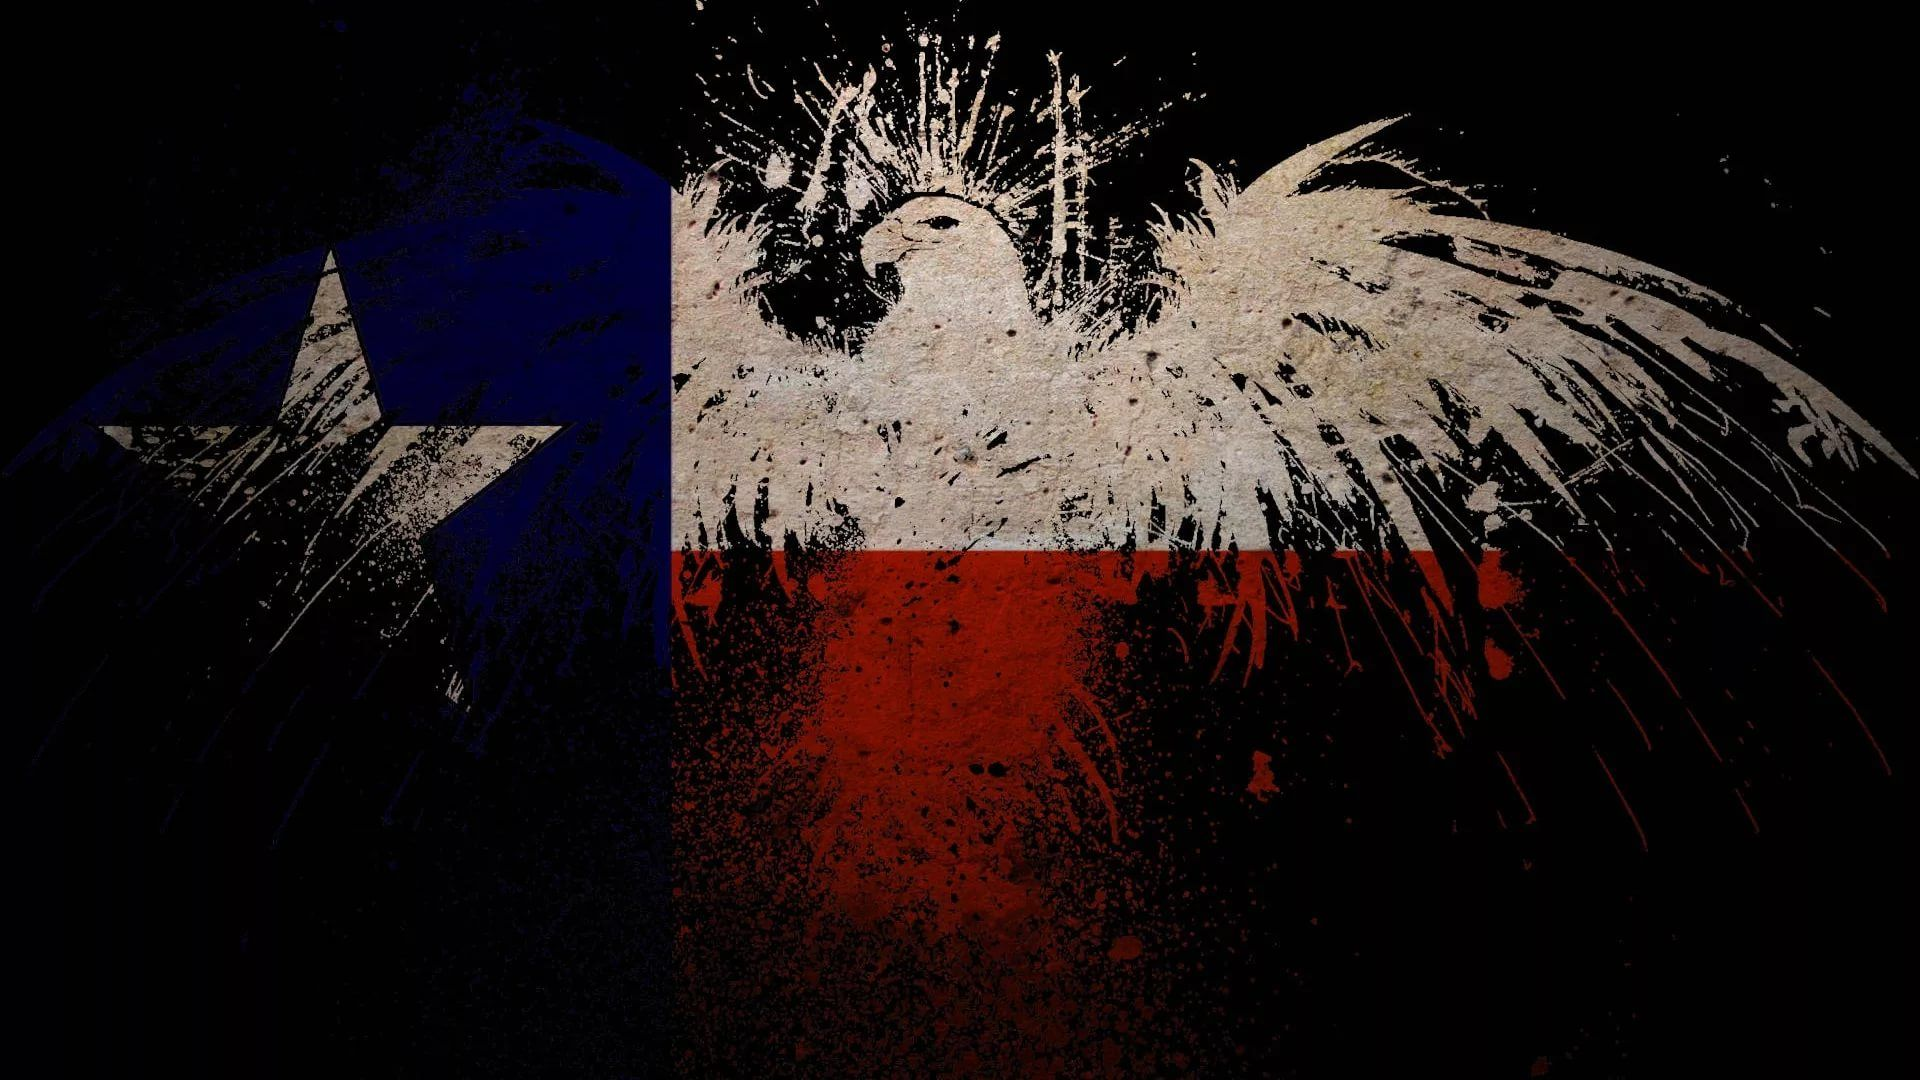 Texas Flag download free wallpapers for pc in hd